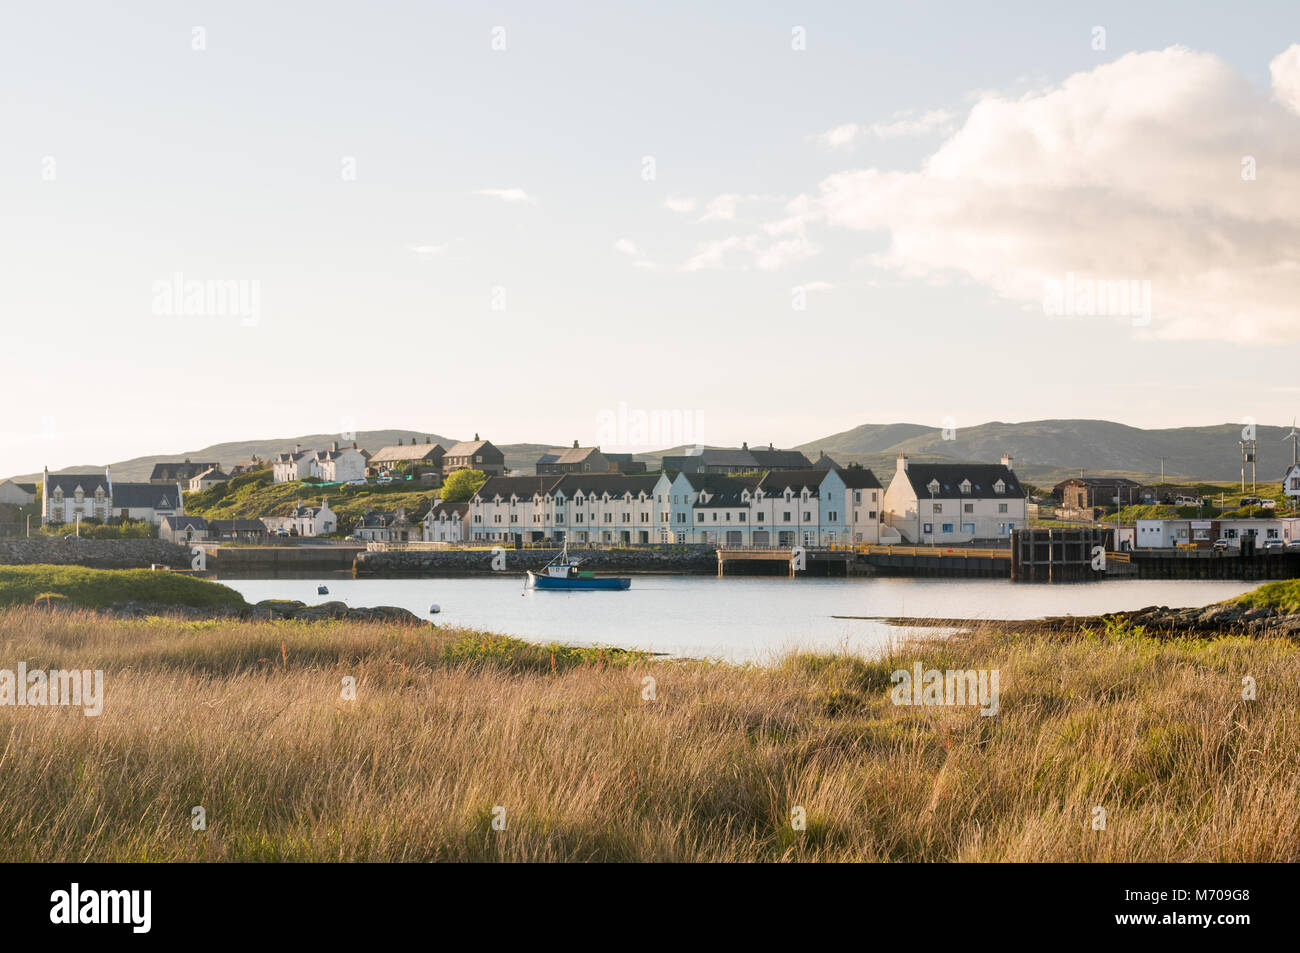 Lochboisdale South Uist Ferry Terminal, Isle of South Uist, Outer Hebrides, Scotland, UK - Stock Image